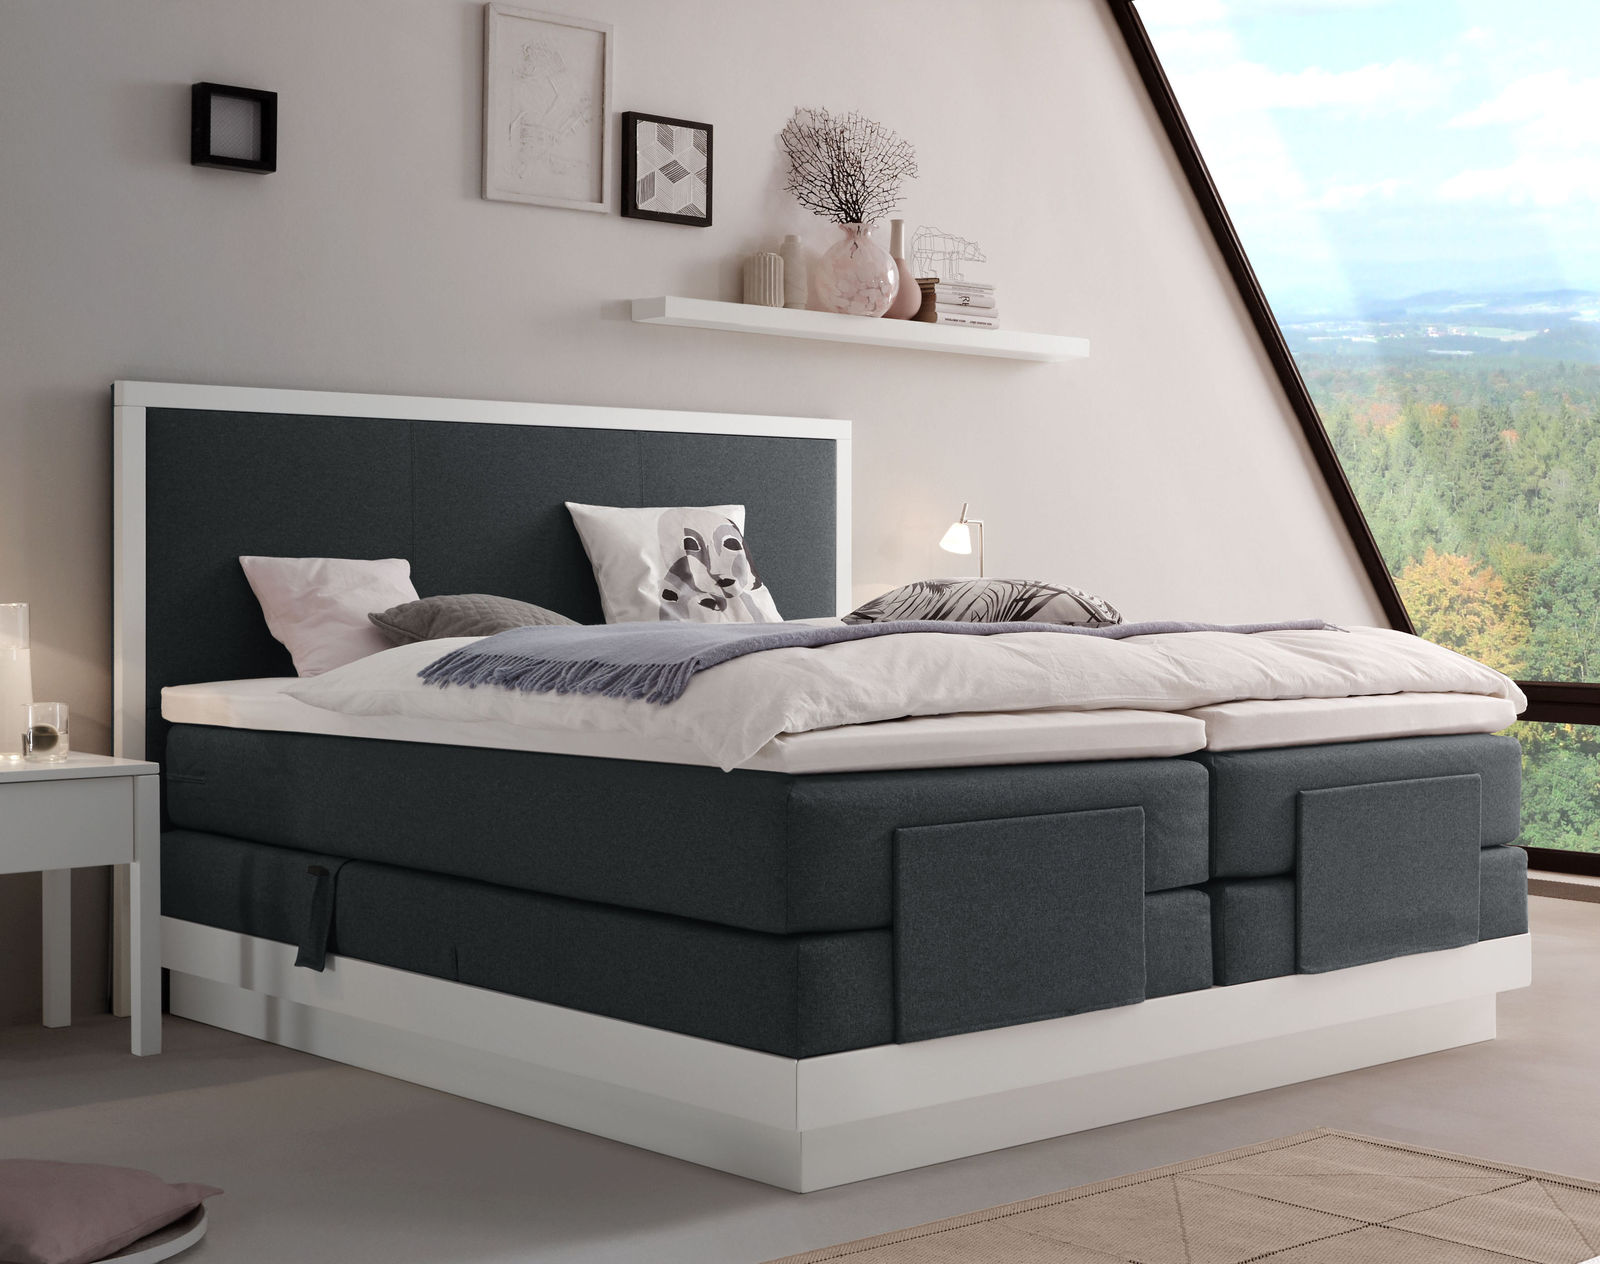 modernes boxspringbett mit motor und wei em buchensockel pando. Black Bedroom Furniture Sets. Home Design Ideas